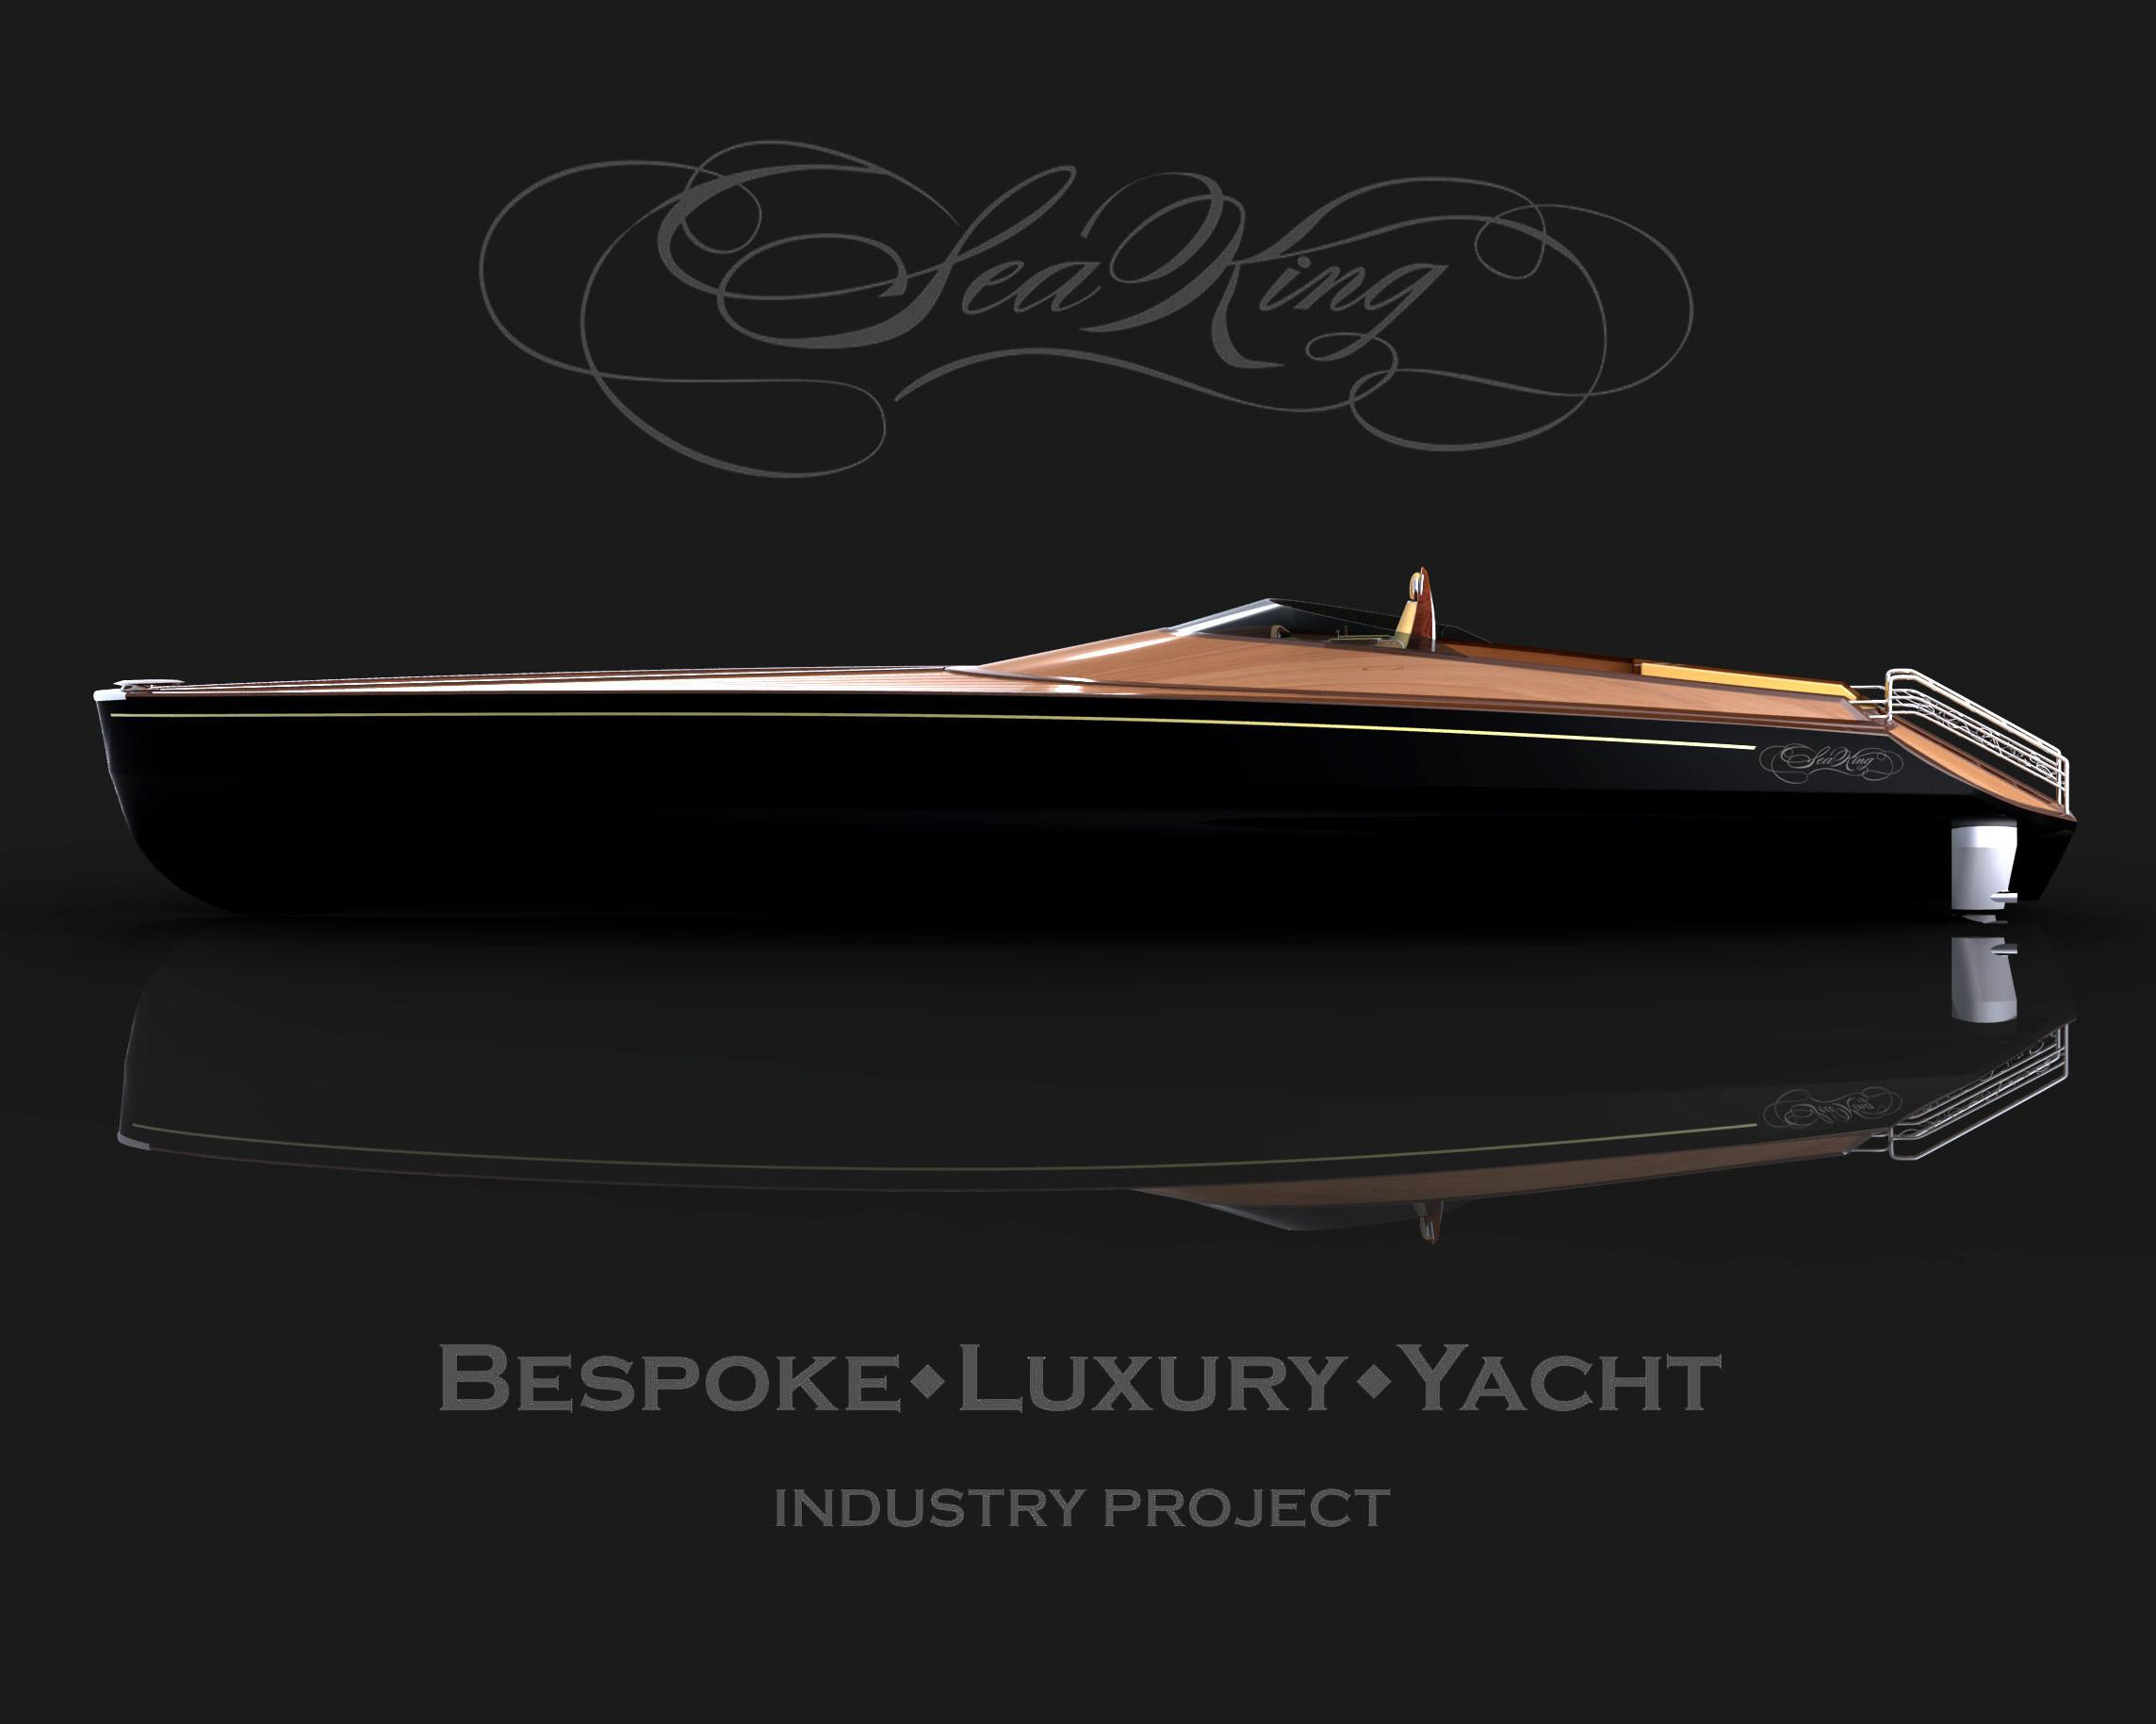 Sea King Bespoke Luxury Yacht Adam Schacter